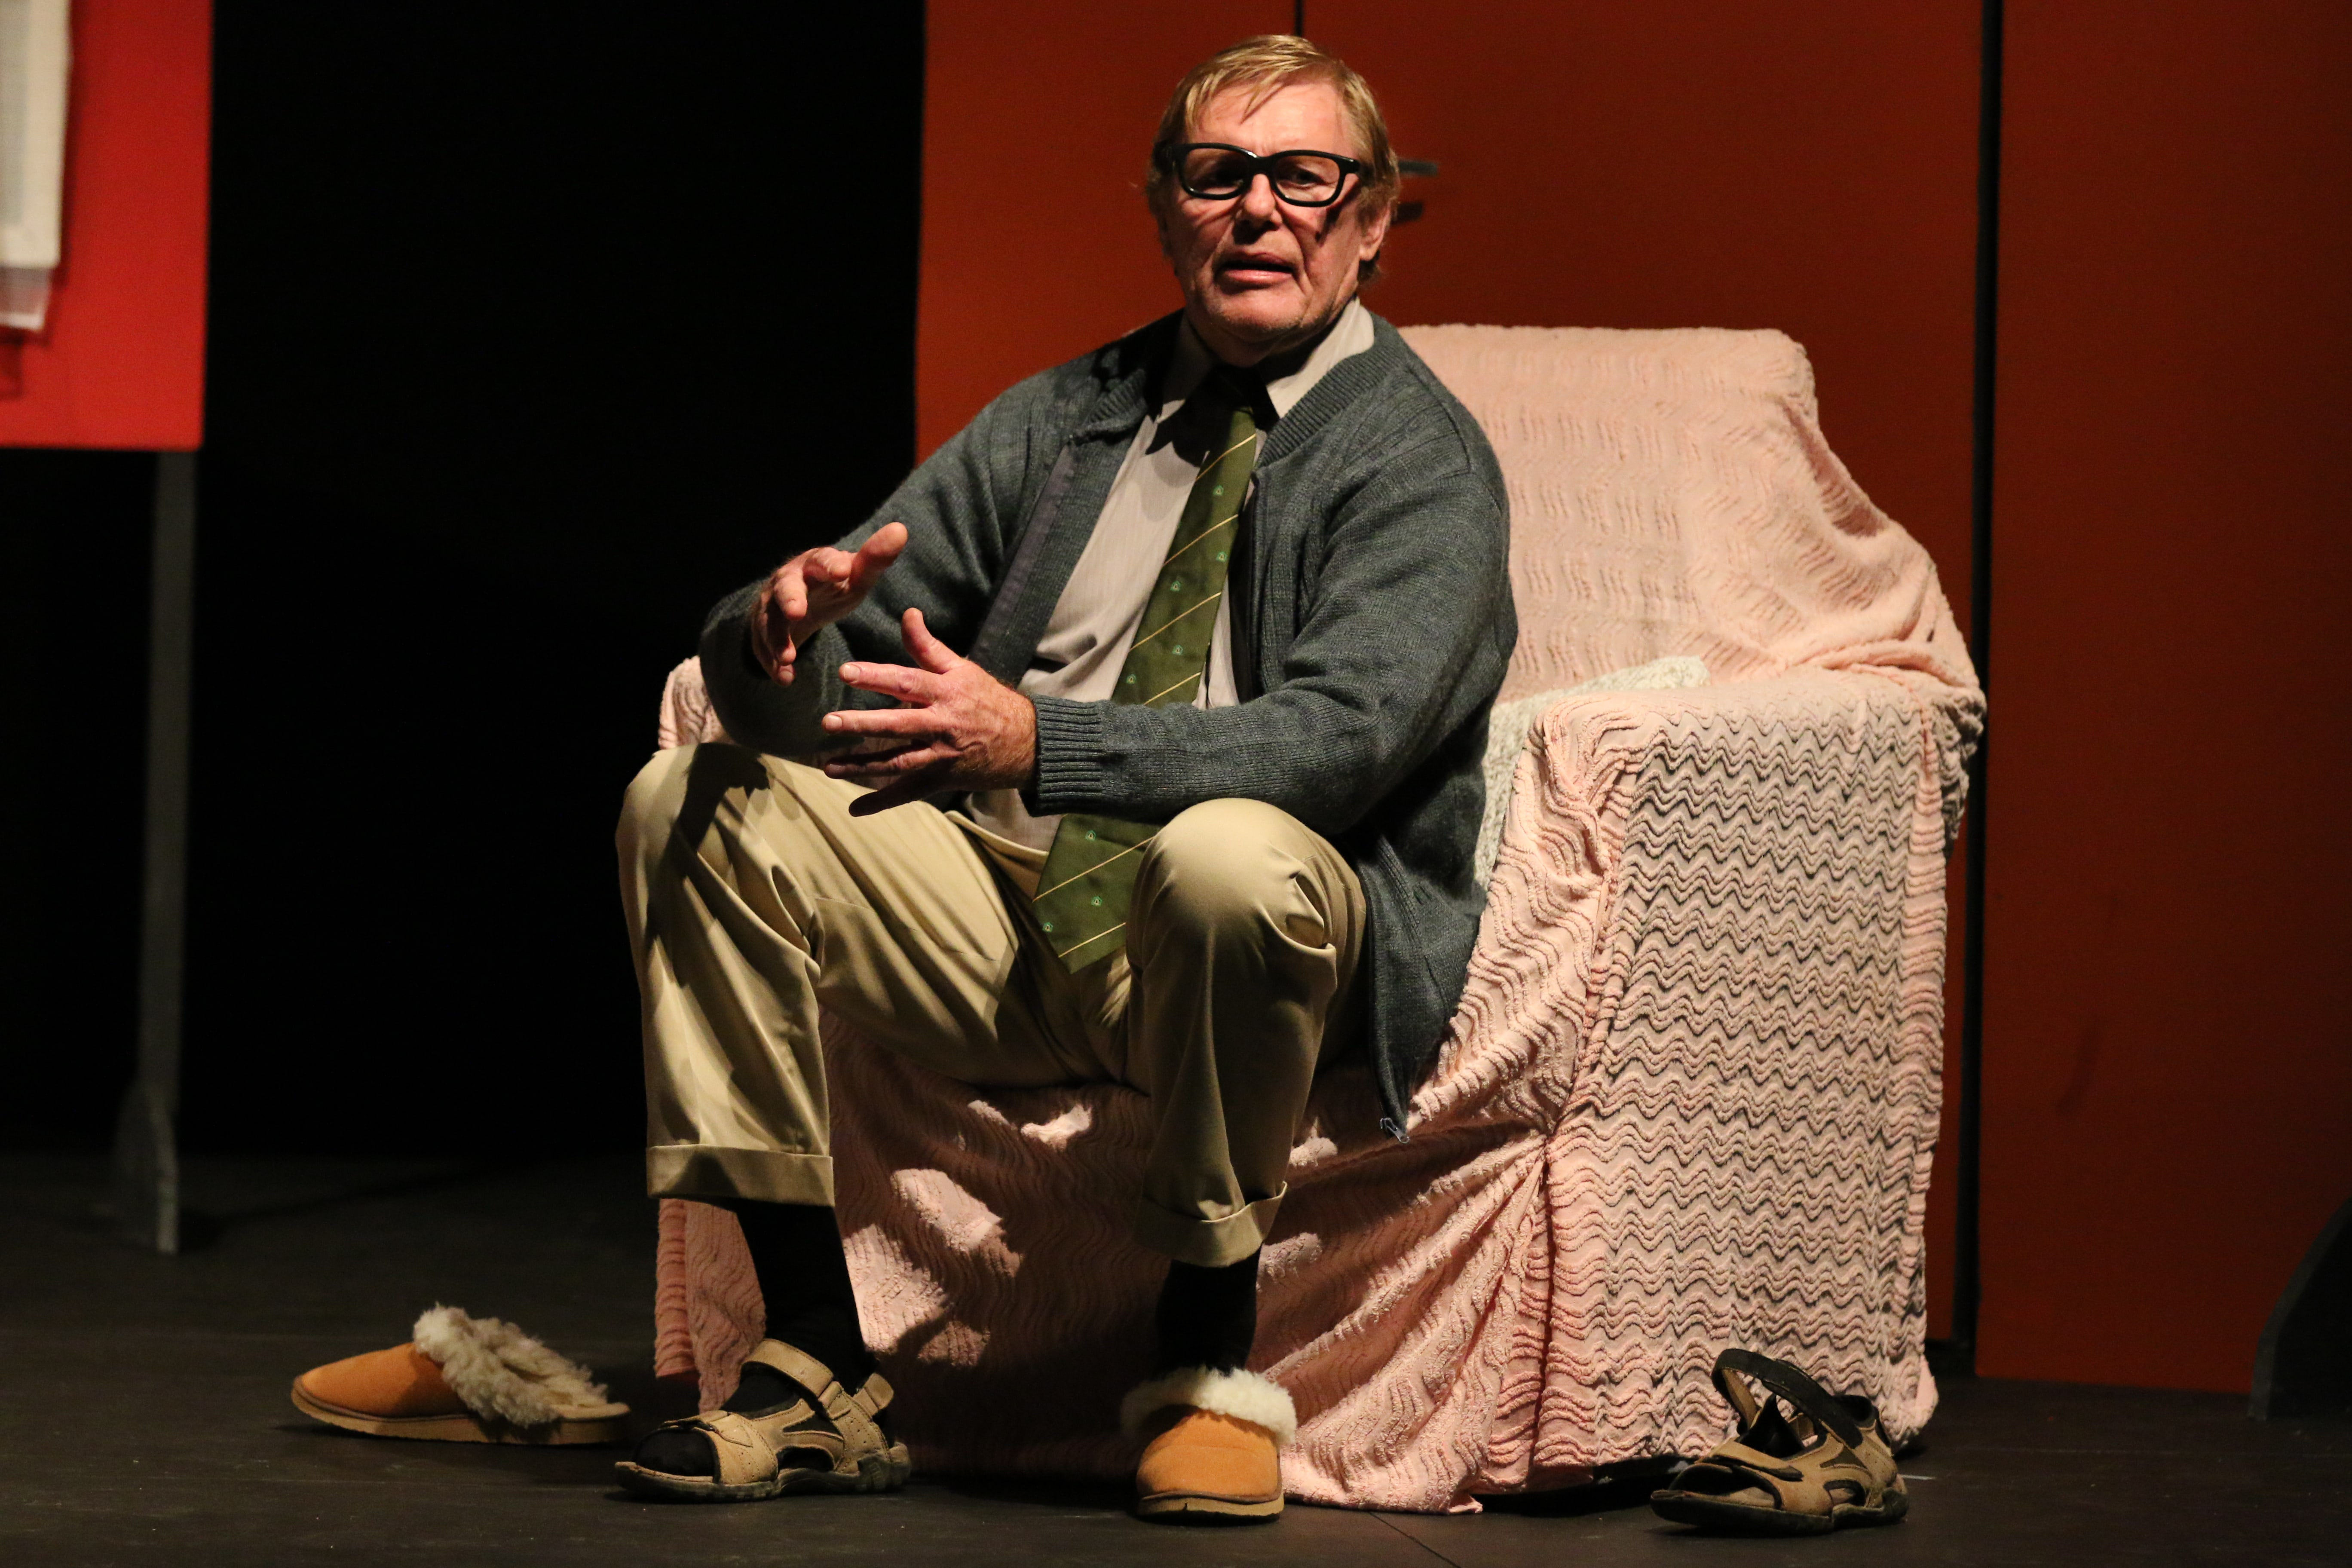 monologue a cream cracker under the 'cream cracker under the settee', written by alan bennett comes from a series of 1980s monologues called 'talking heads' it was written for television so.